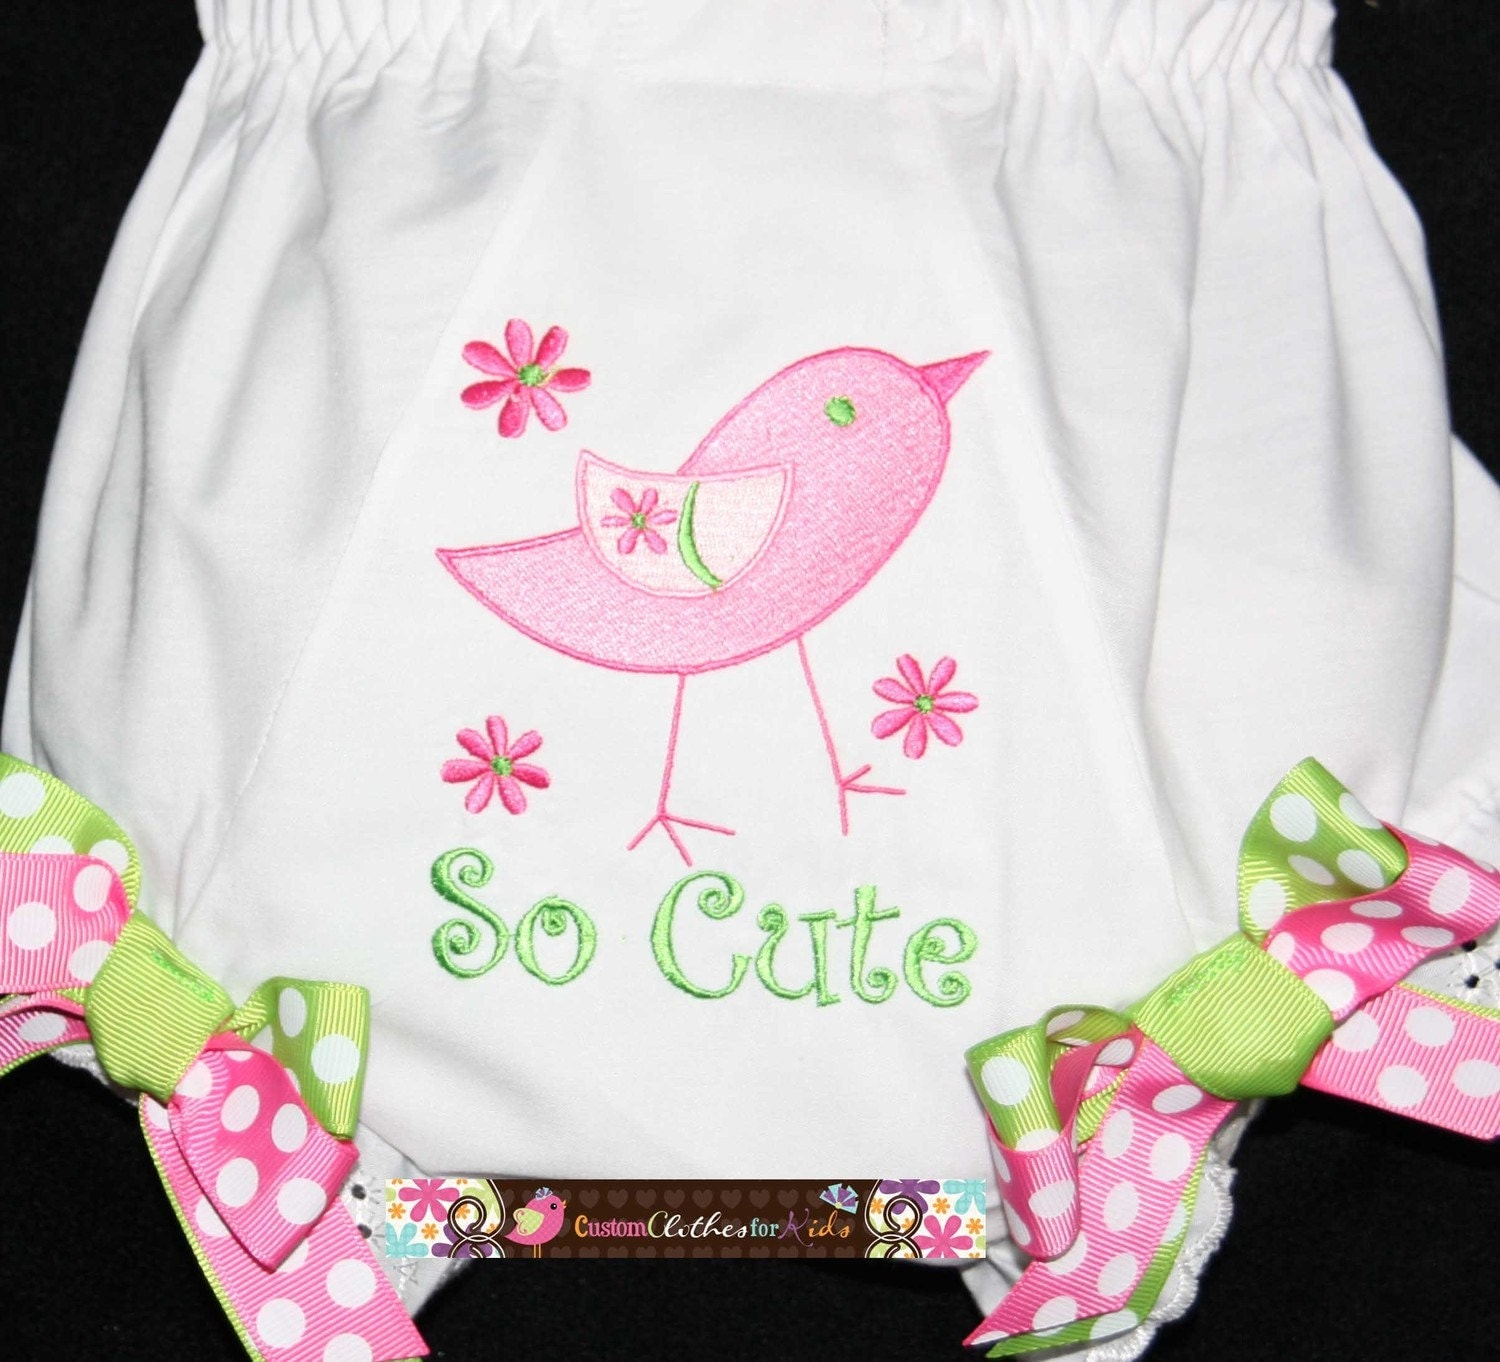 Create Your Own Personalized Custom Bloomers Diaper Cover Baby Girl Toddler So Cute Birdie Double Ribbon Birthday Photoshoot Free Monogrammed